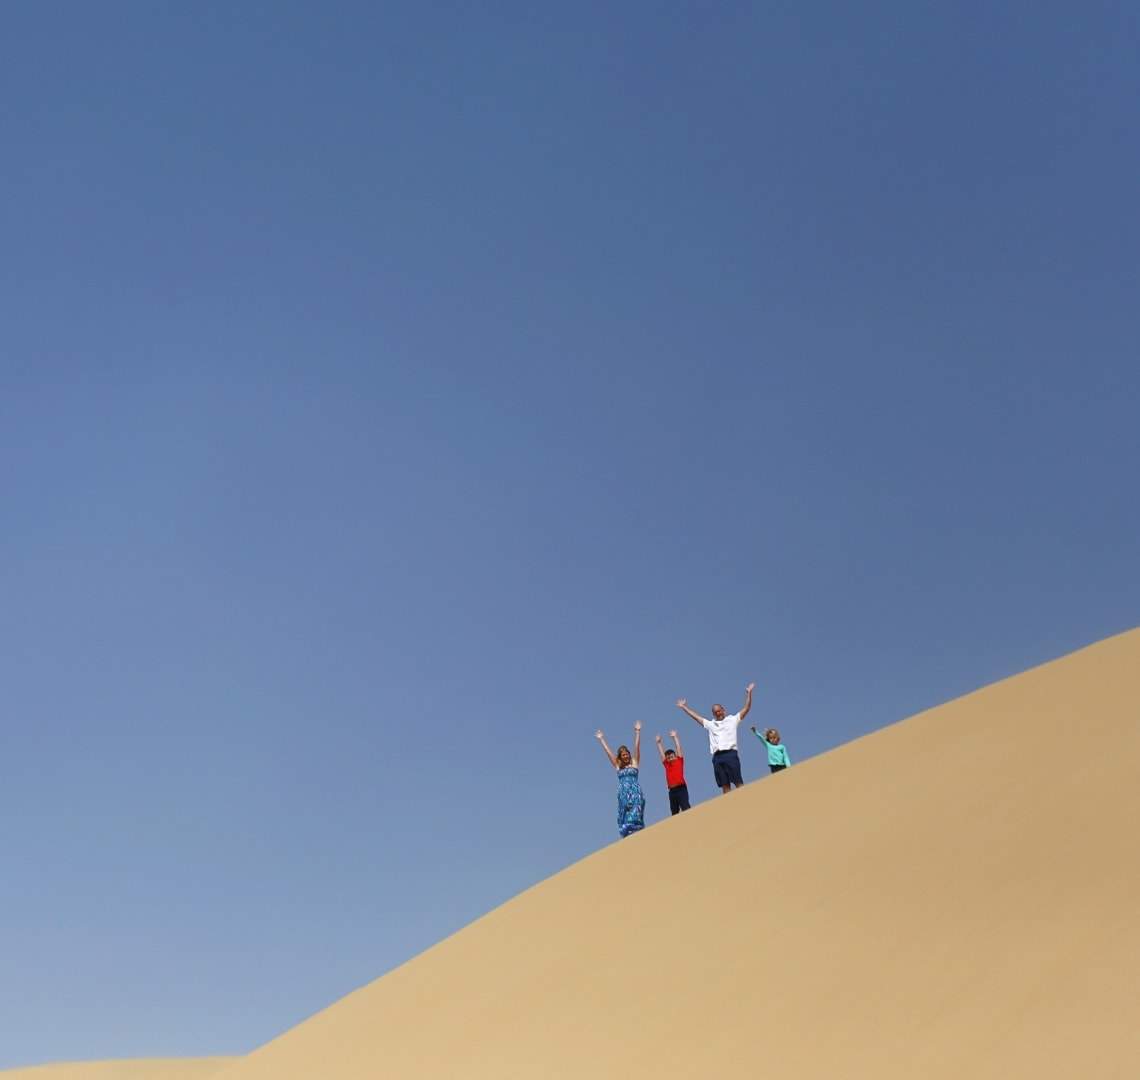 When the end is in sight - - our family stood at the top of a sand dune with our arms in the air